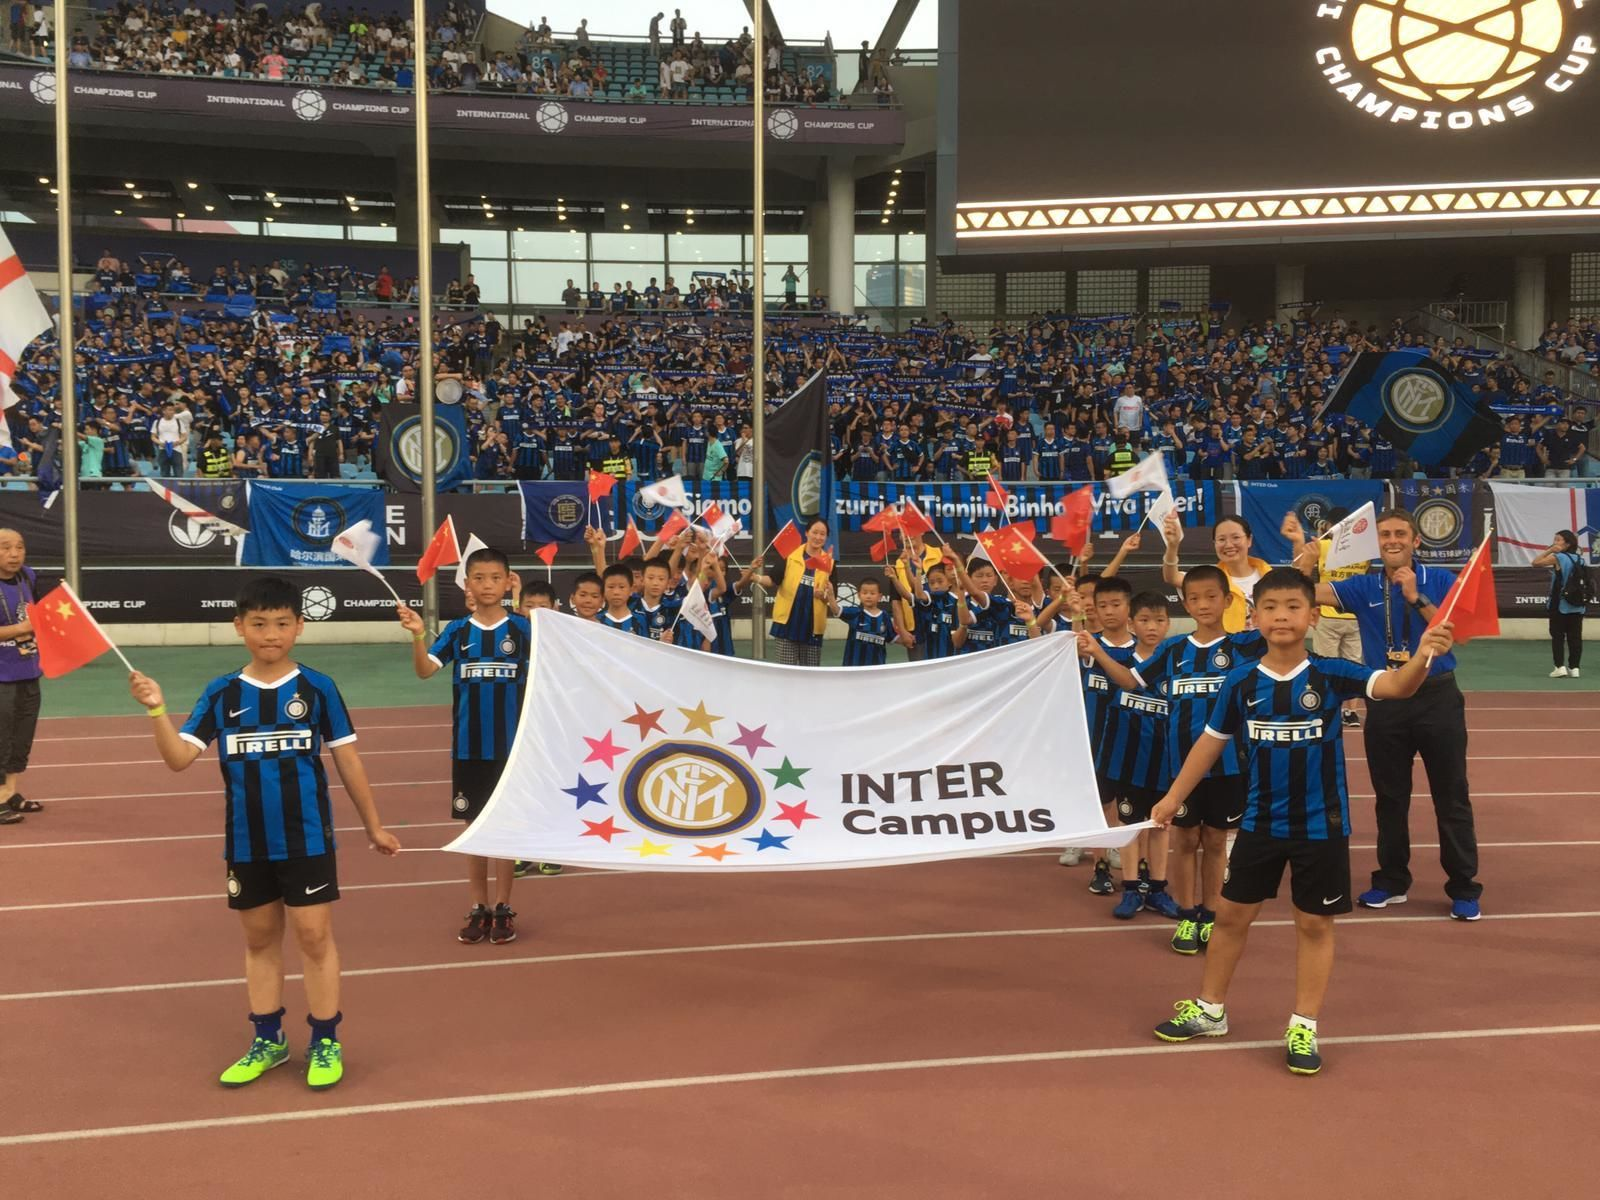 Inter Campus on the Inter Summer Tour